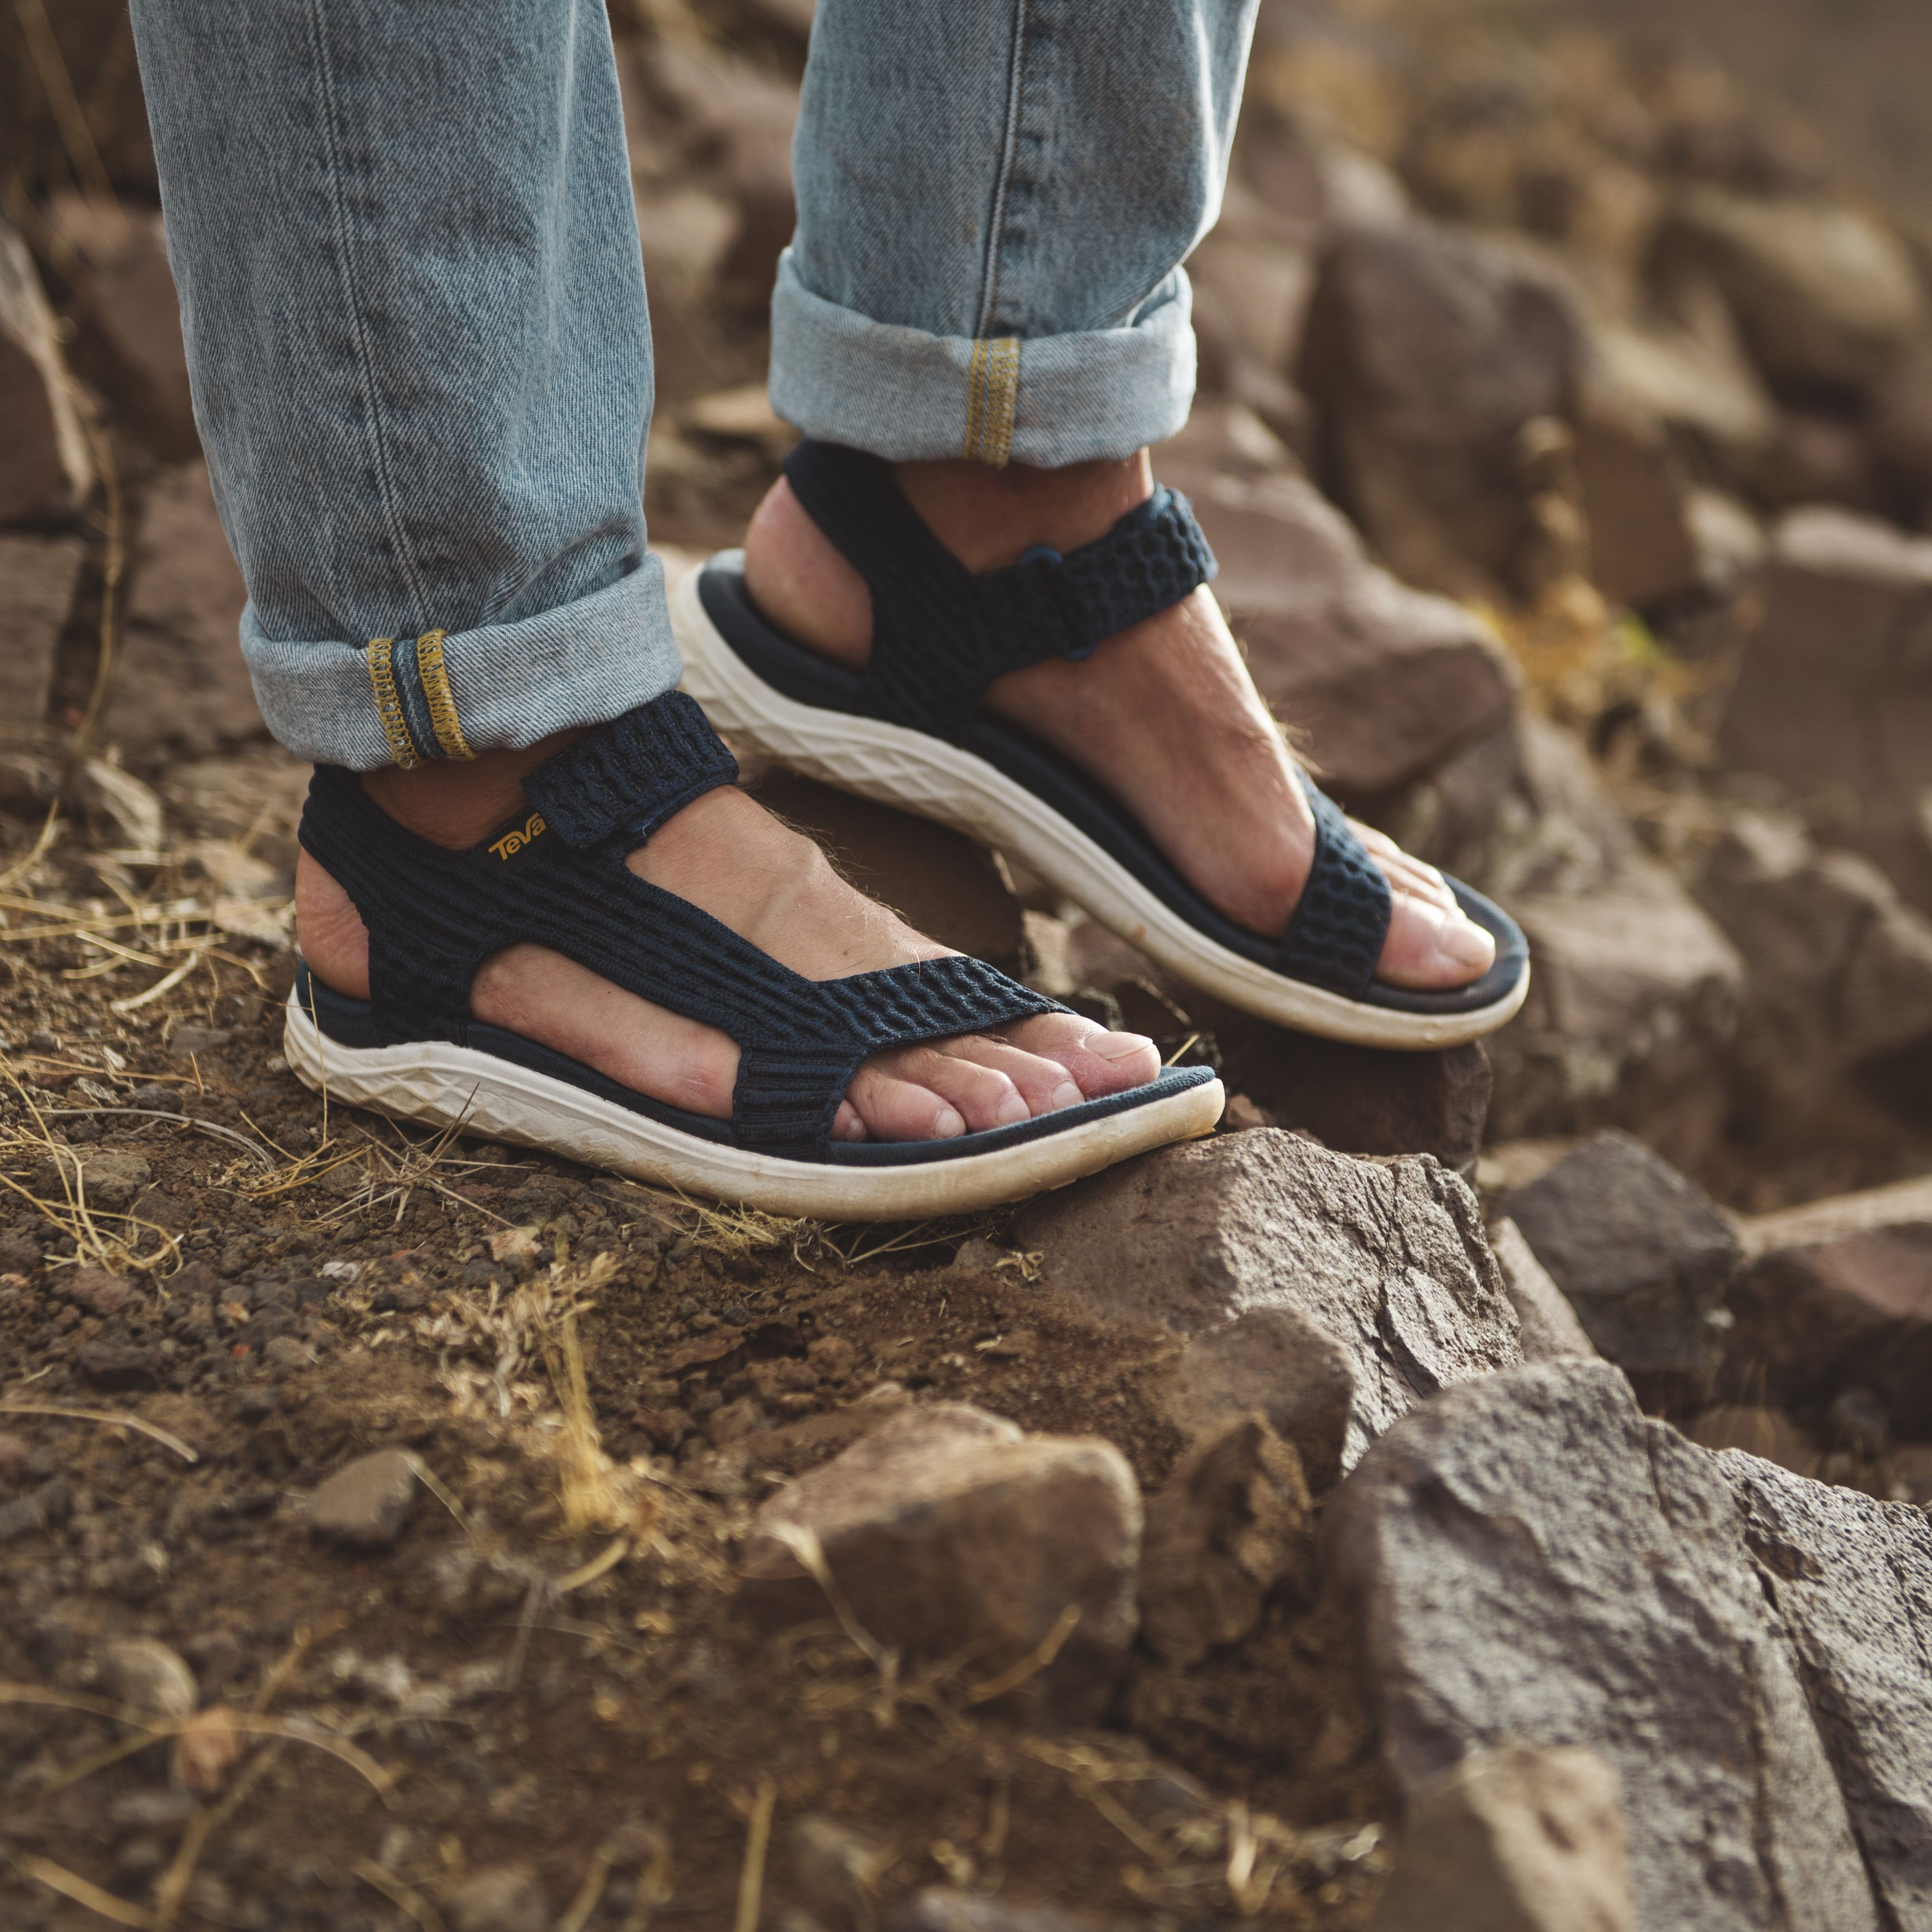 5928a29f0db No pavement  No problem. Find this Pin and more on The Terra-Float 2 Knit  by Teva.